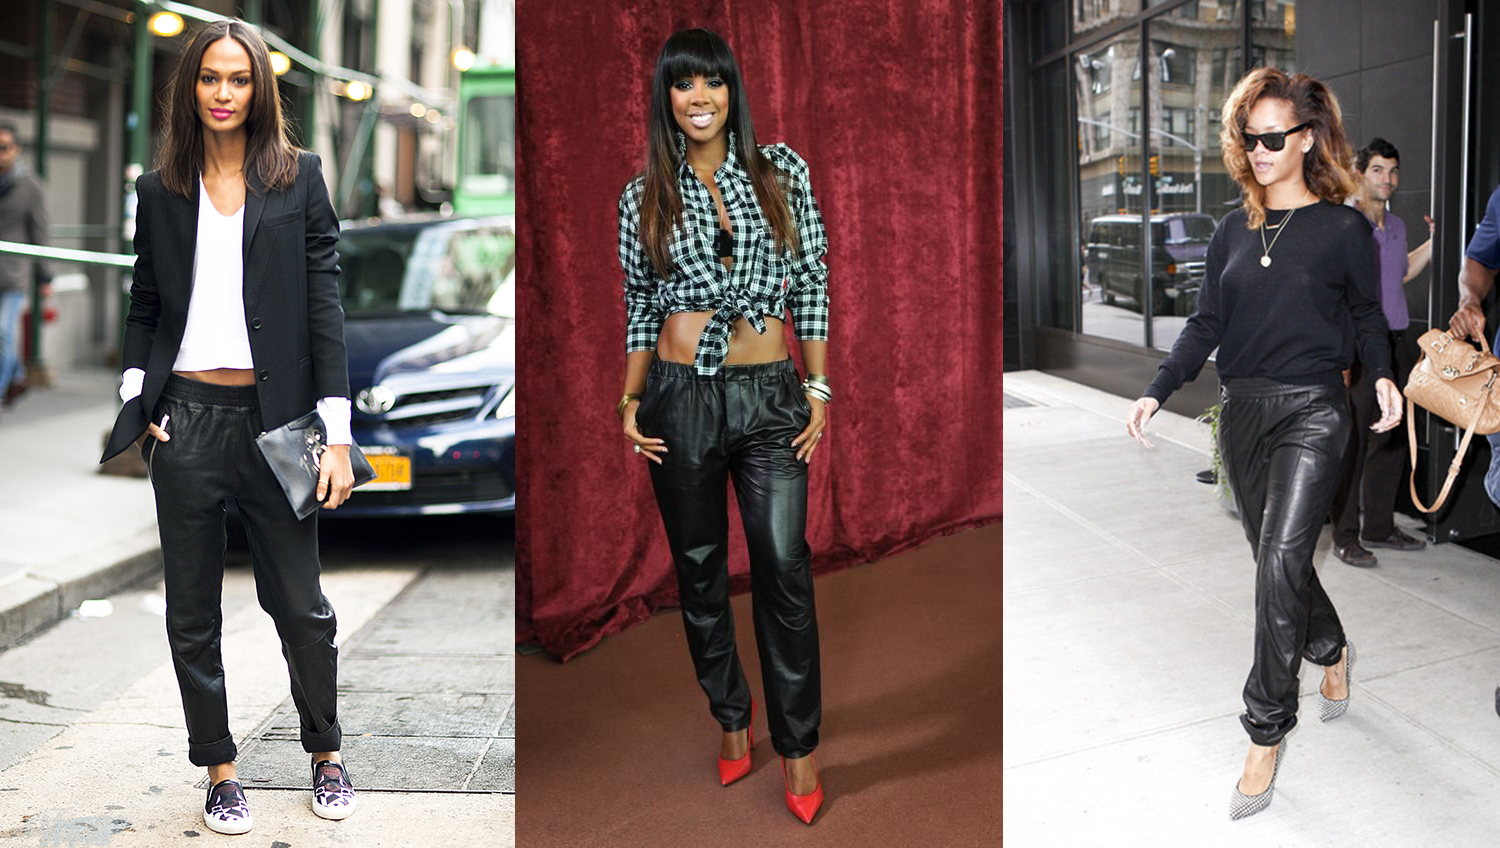 tendance pantalon jogging cuir kelly rowland rihanna joan smalls